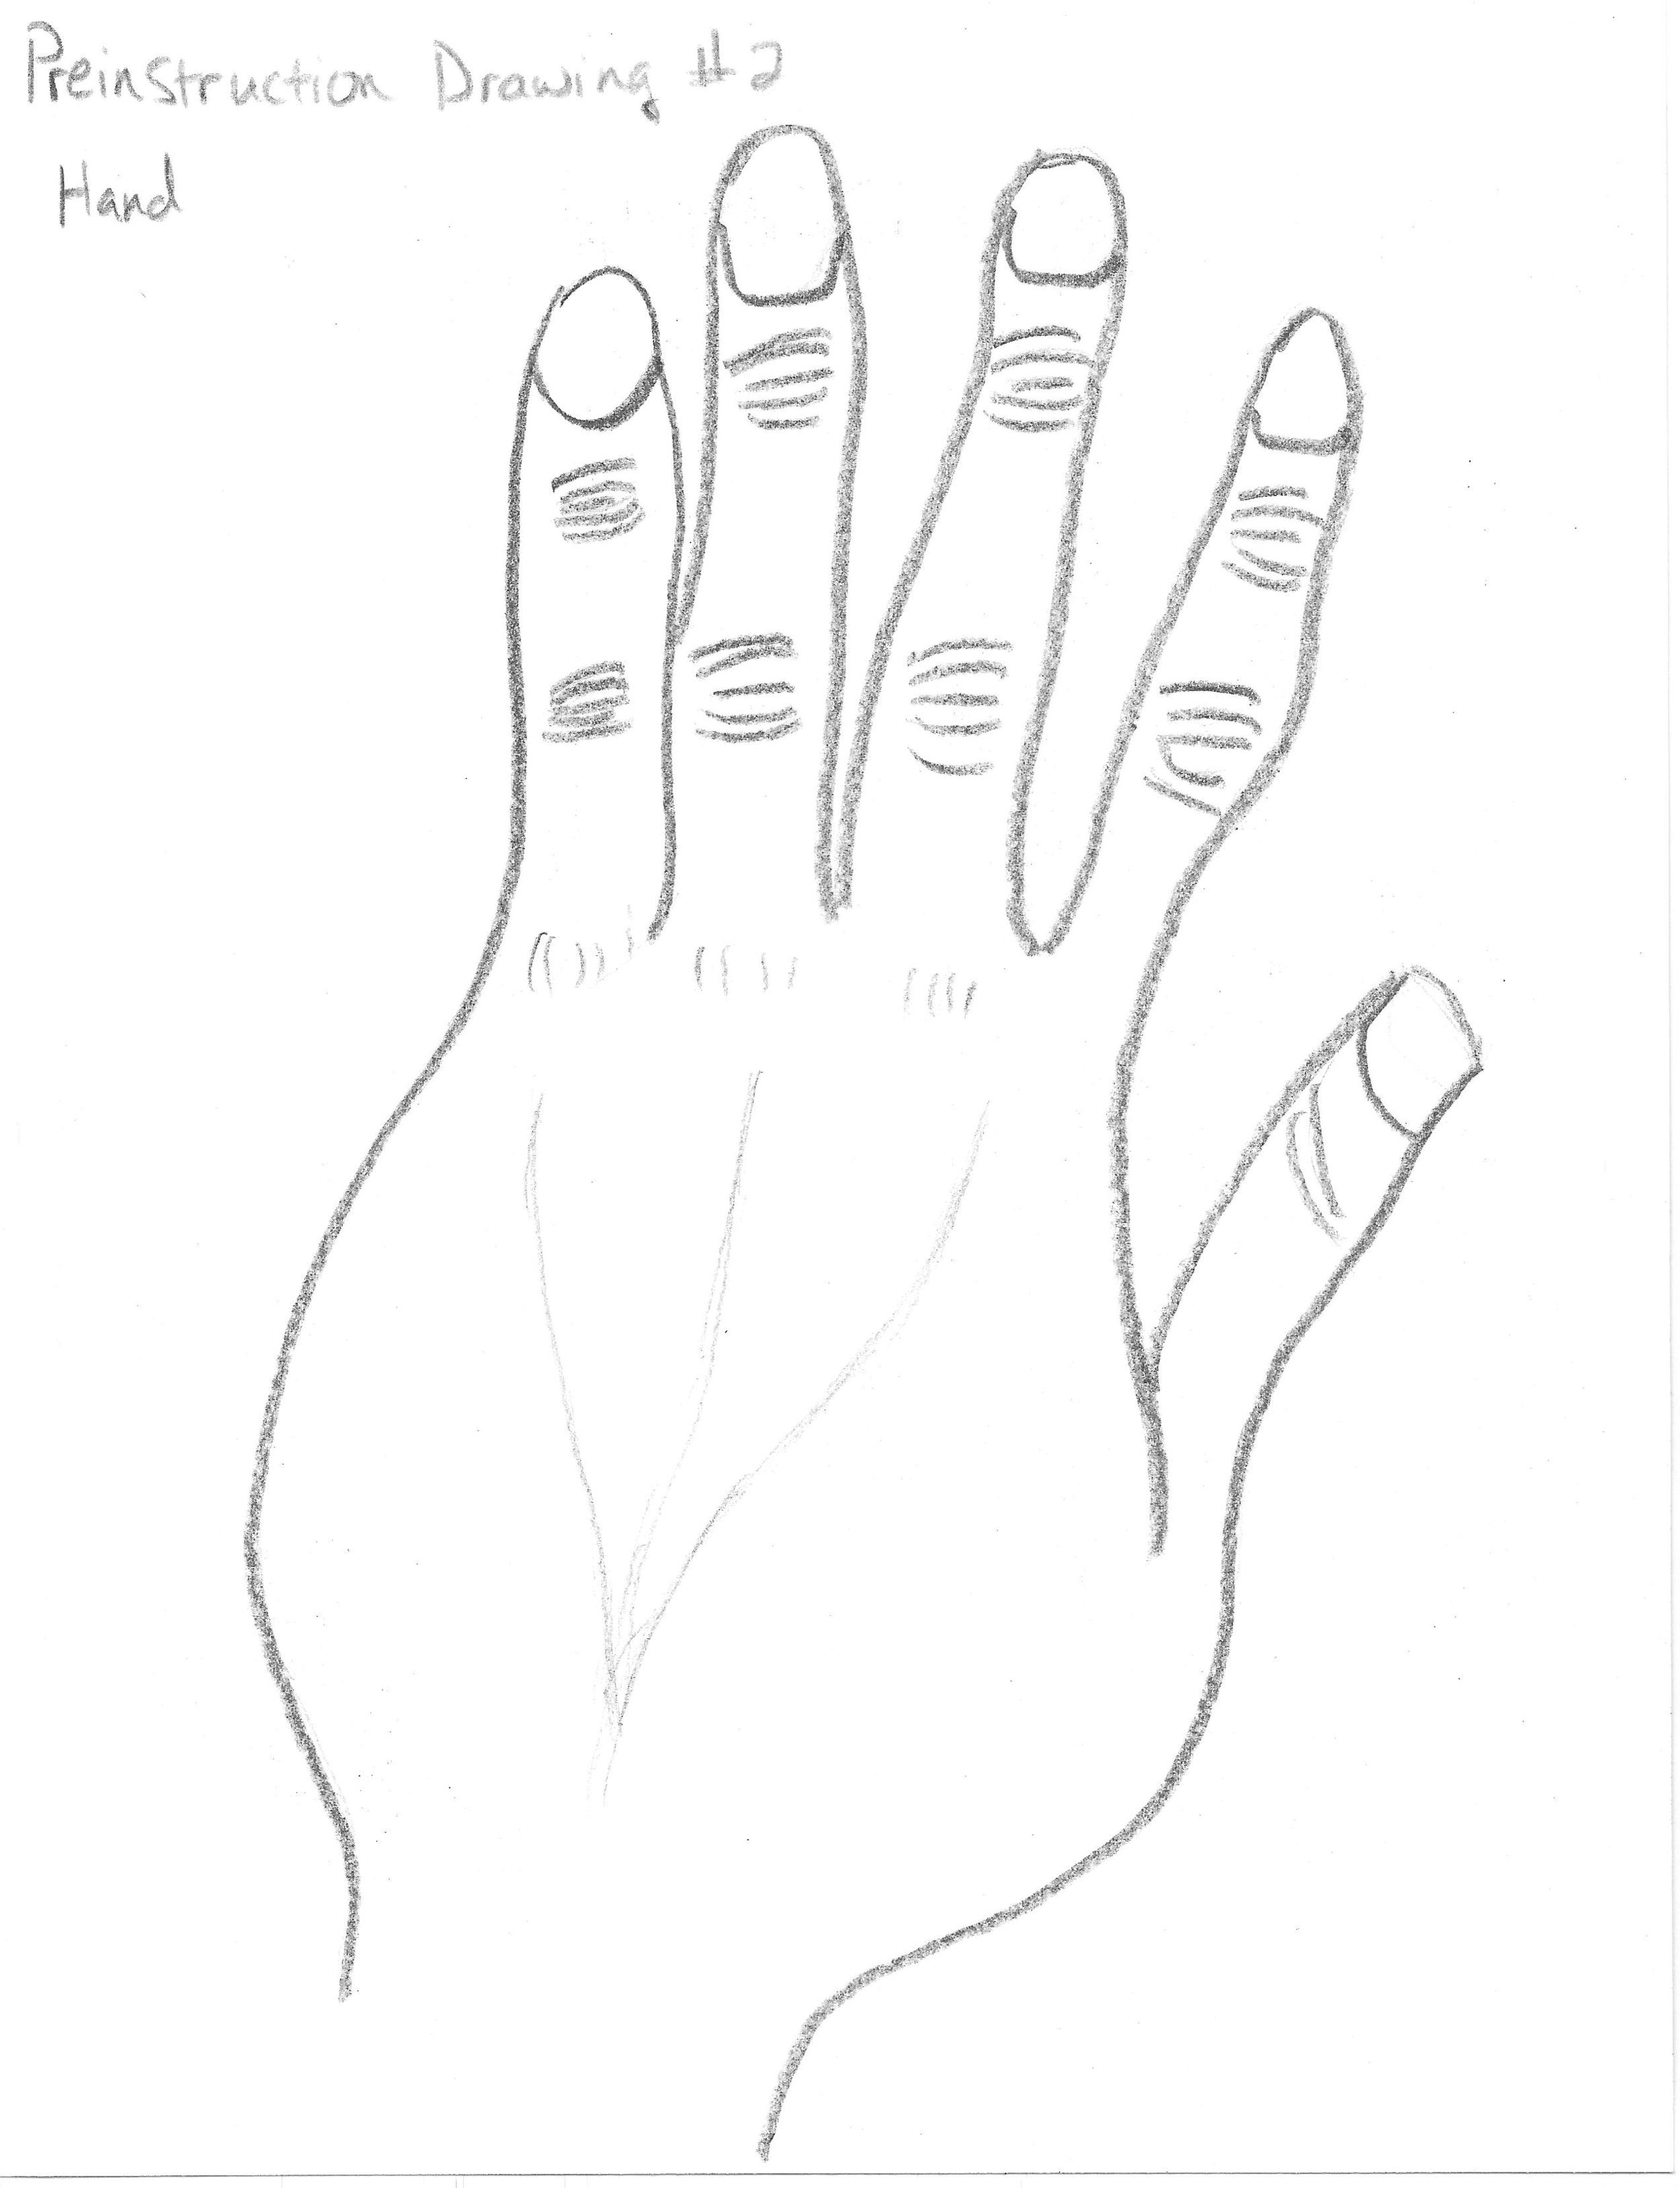 Preinstruction Drawing #2 - Hand